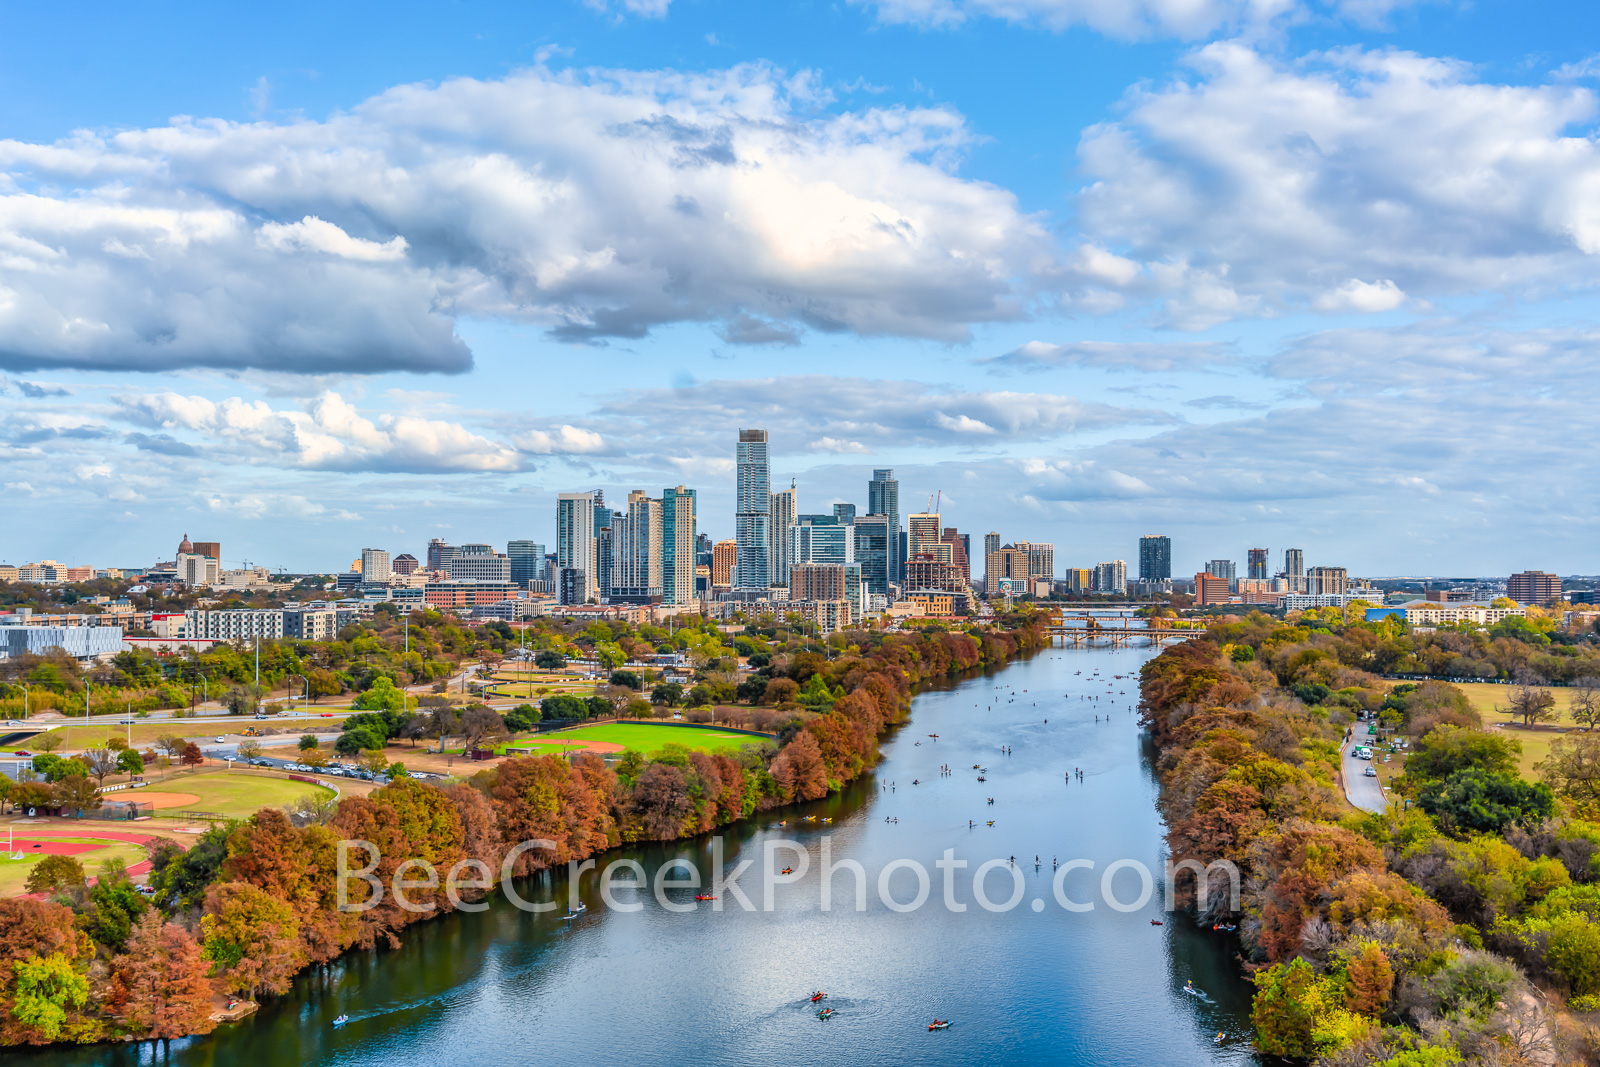 texas, fall, austin skyline, austin, lady bird lake, town lake, texas hill country, lake austin, zilker park, downtown austin, austin texas, city of austin, bald cypress, red oaks, austin texas, refle, photo